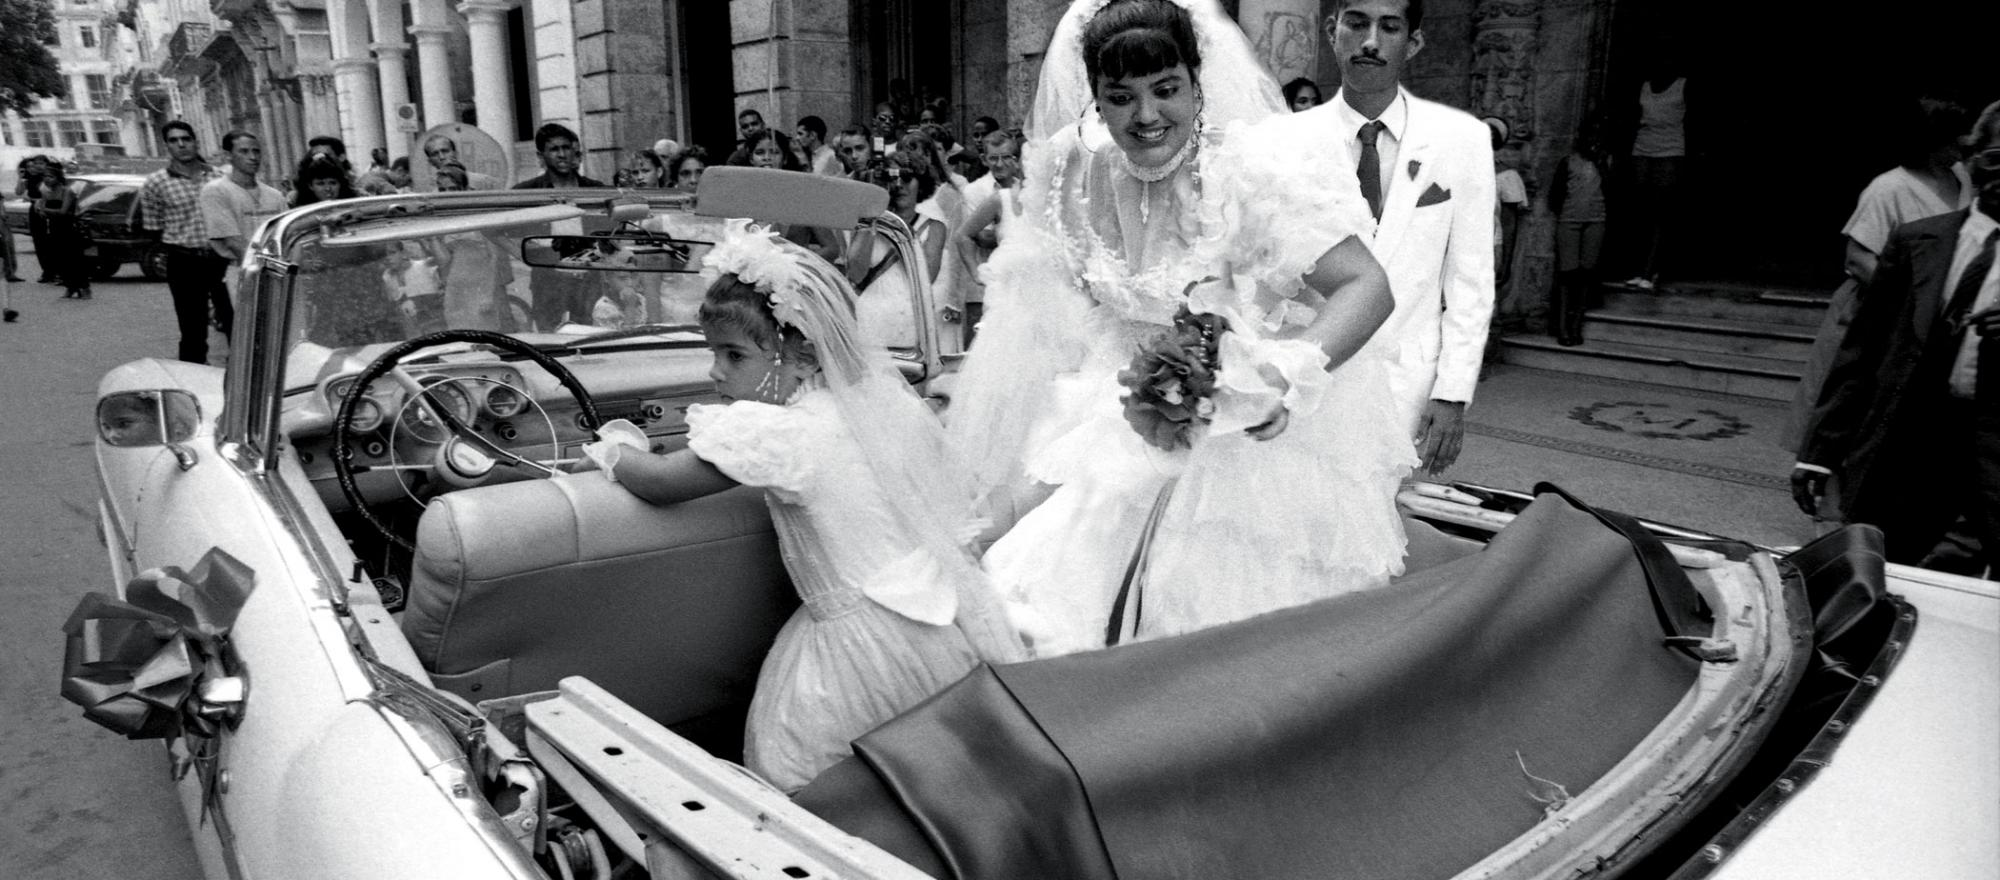 A newly married couple in Havana. PHOTOS: MANUELLO PAGANELLI